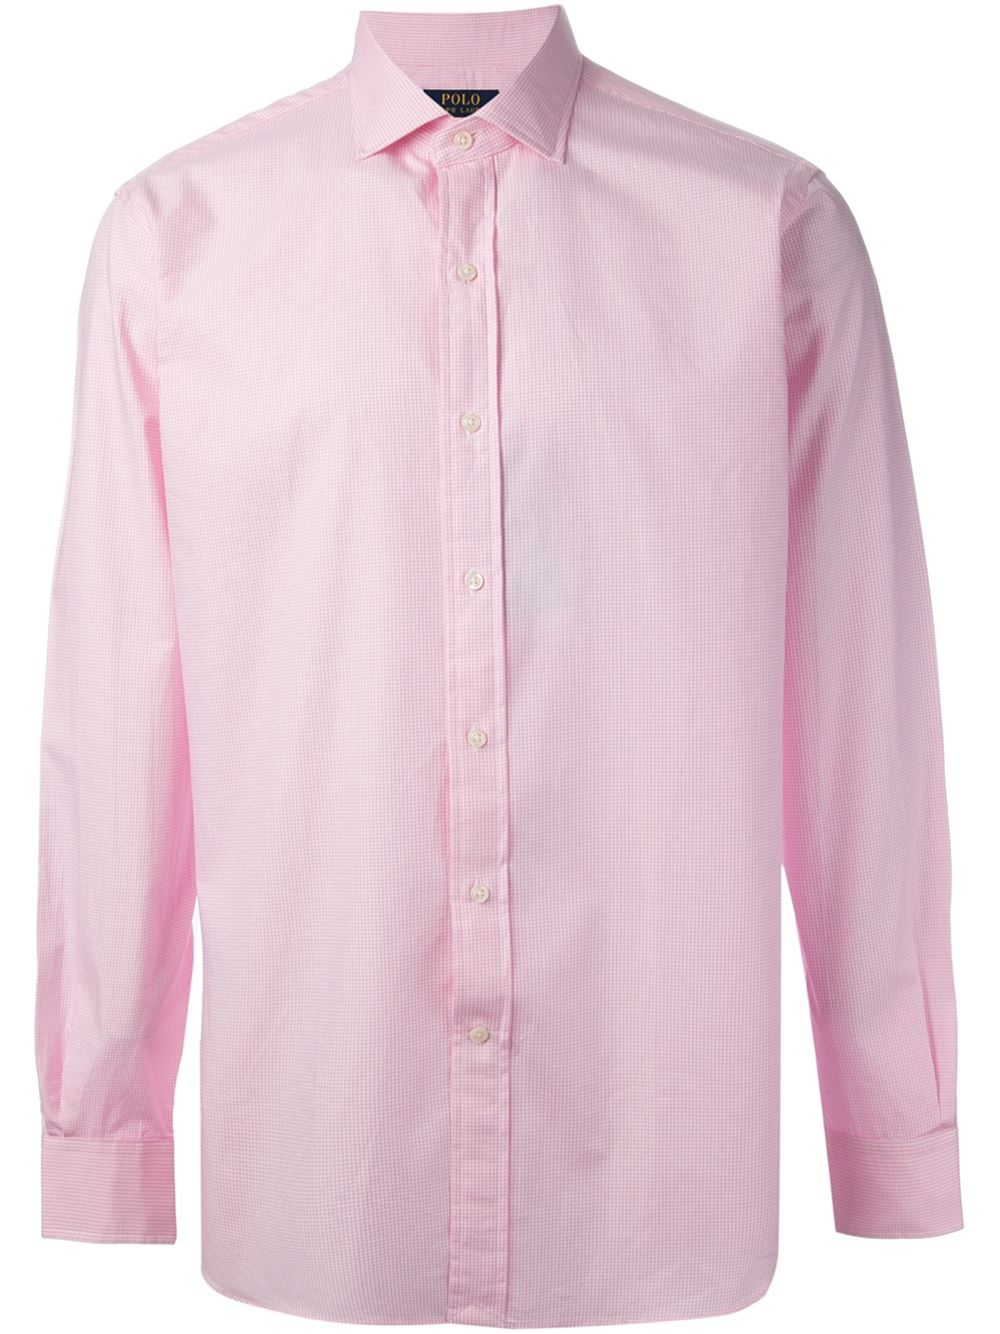 Polo Ralph Lauren Check Print Shirt In Pink For Men Pink